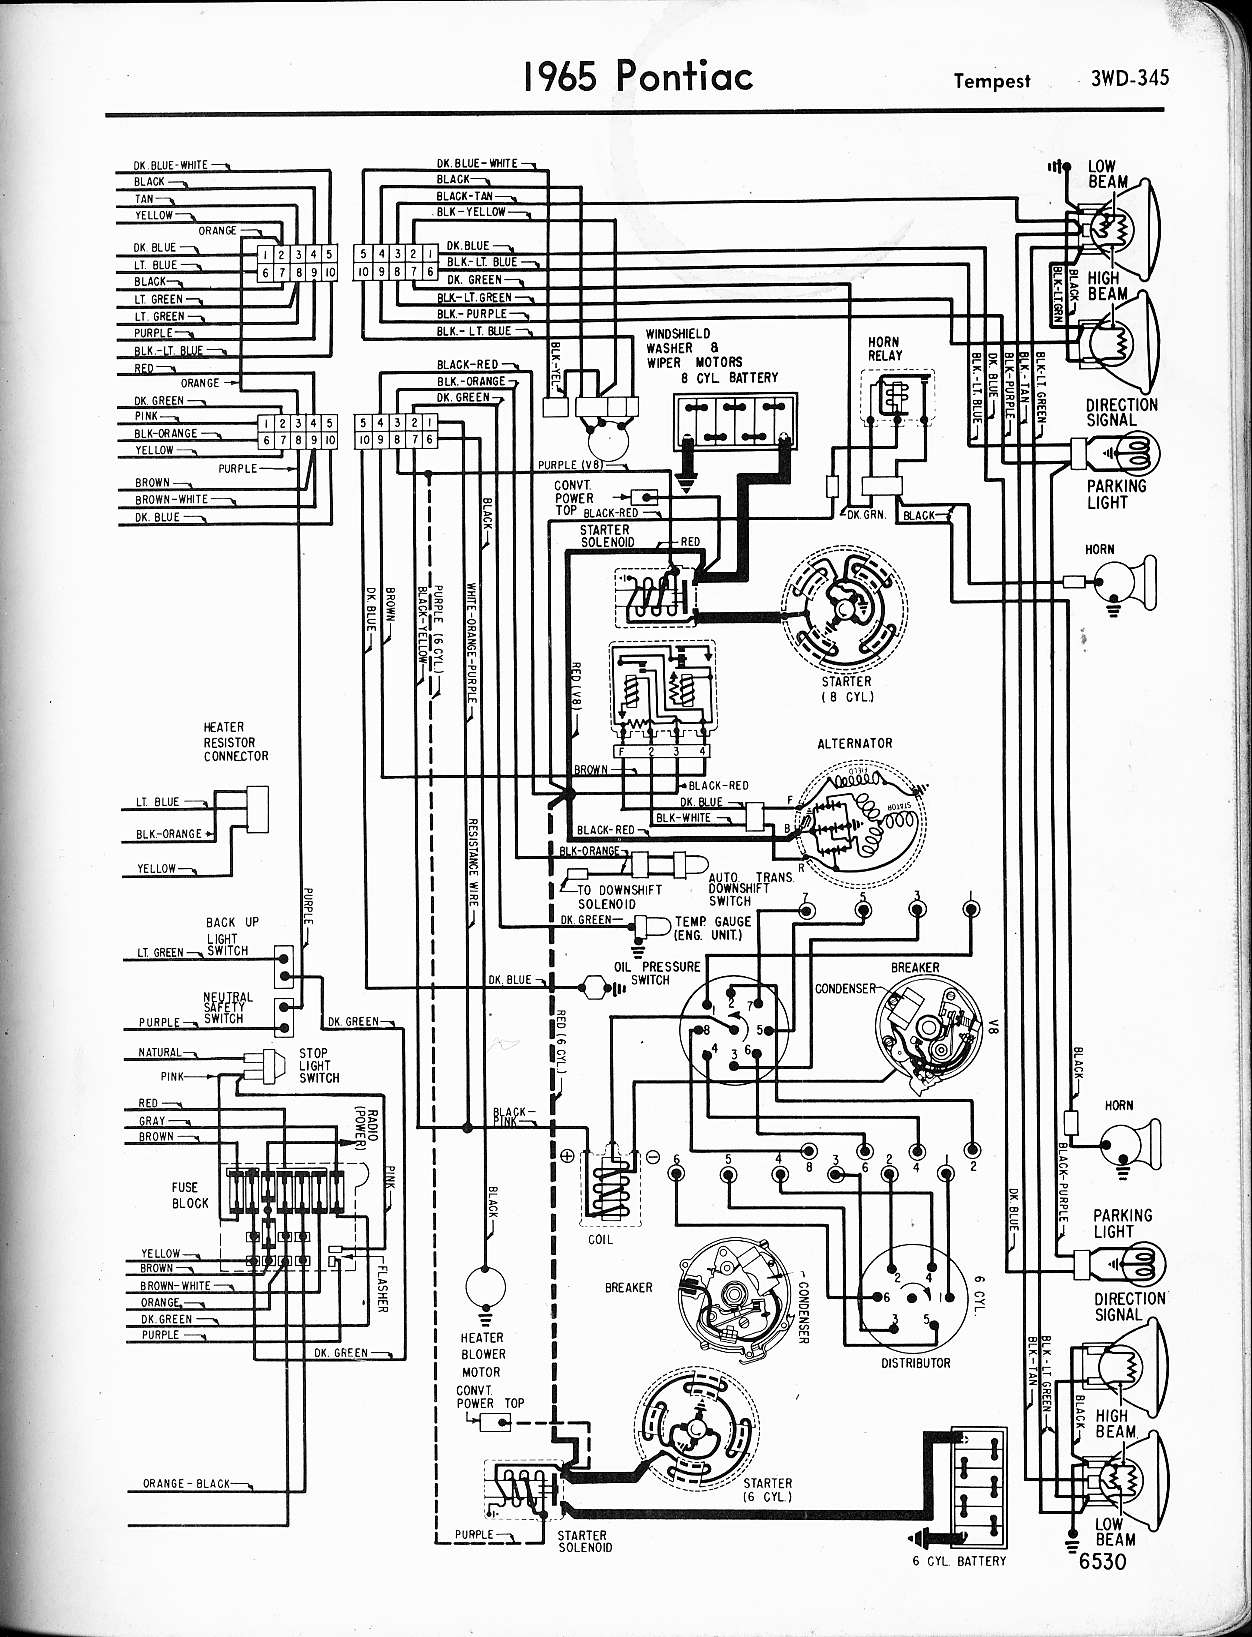 MWire5765 345 69 camaro wiring diagram 69 camaro dash wiring diagram \u2022 free pontiac wiring diagrams at virtualis.co